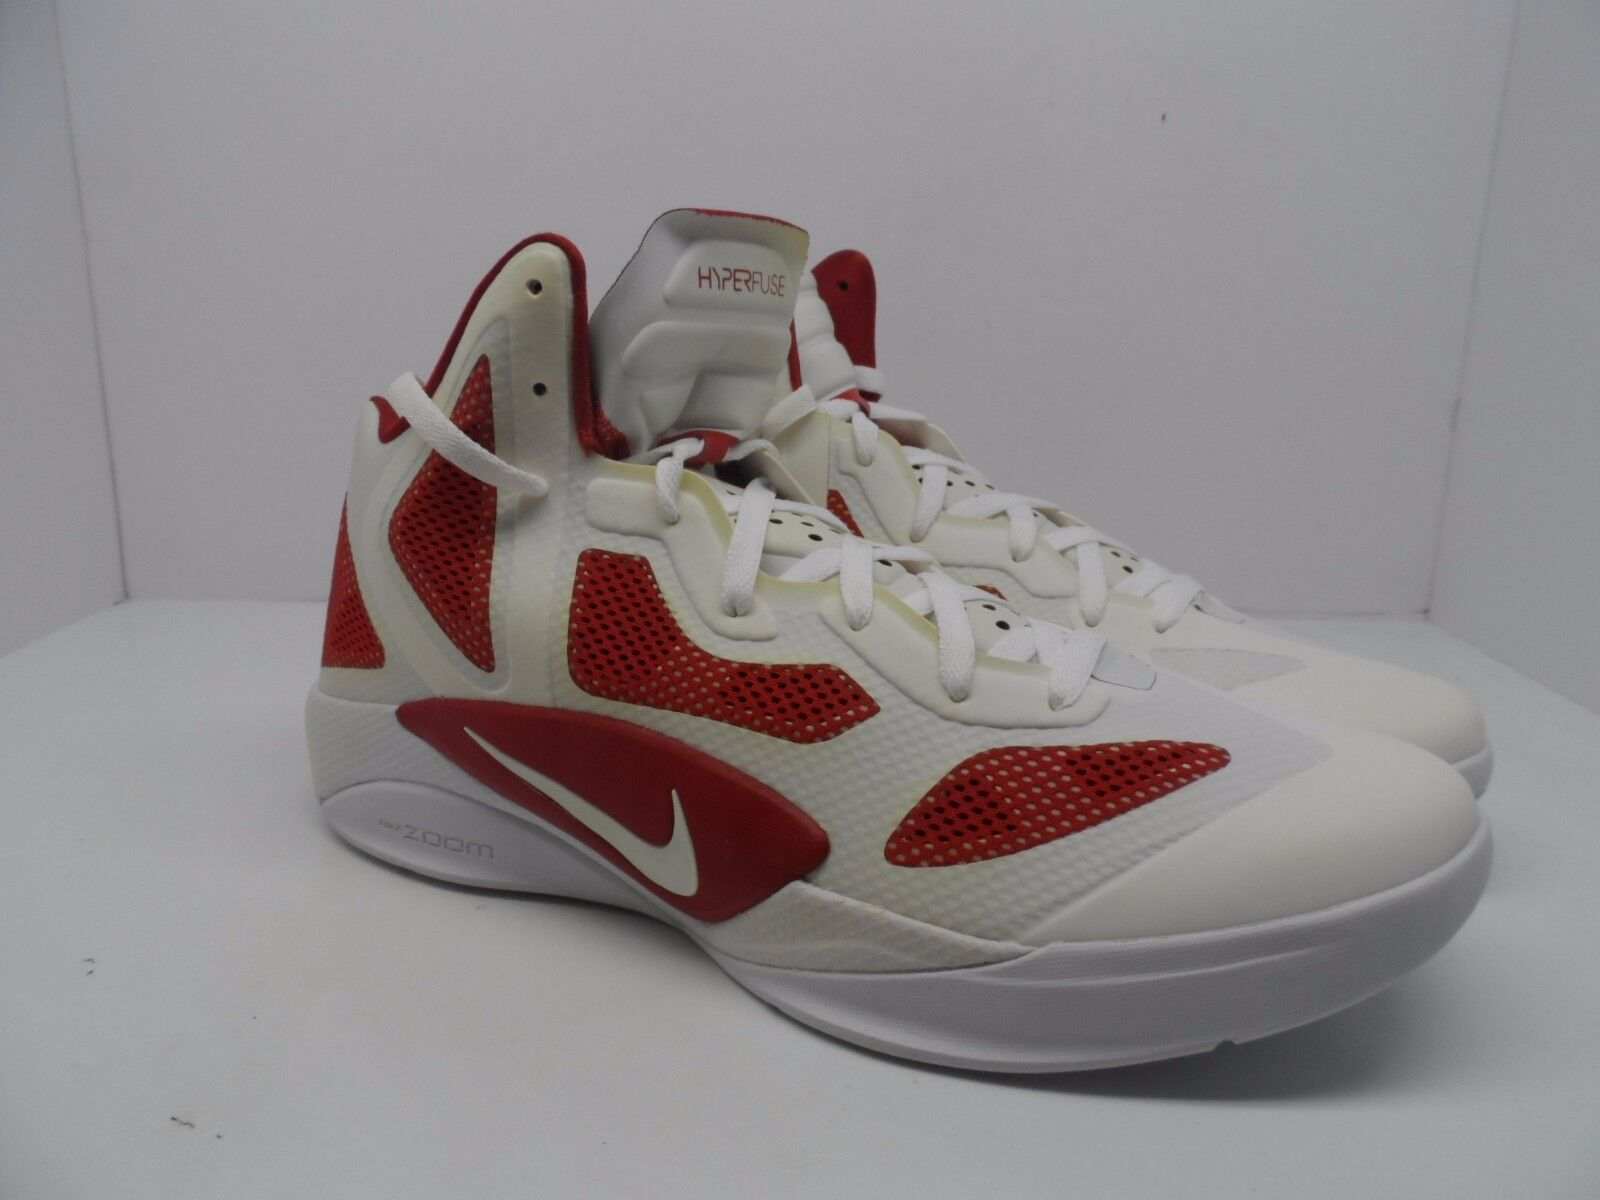 a280c4ade6b Nike Men s Zoom Hyperfuse 2011 2011 2011 TB Basketball Shoe White Varsity  Red Size 12.5M 9640b2